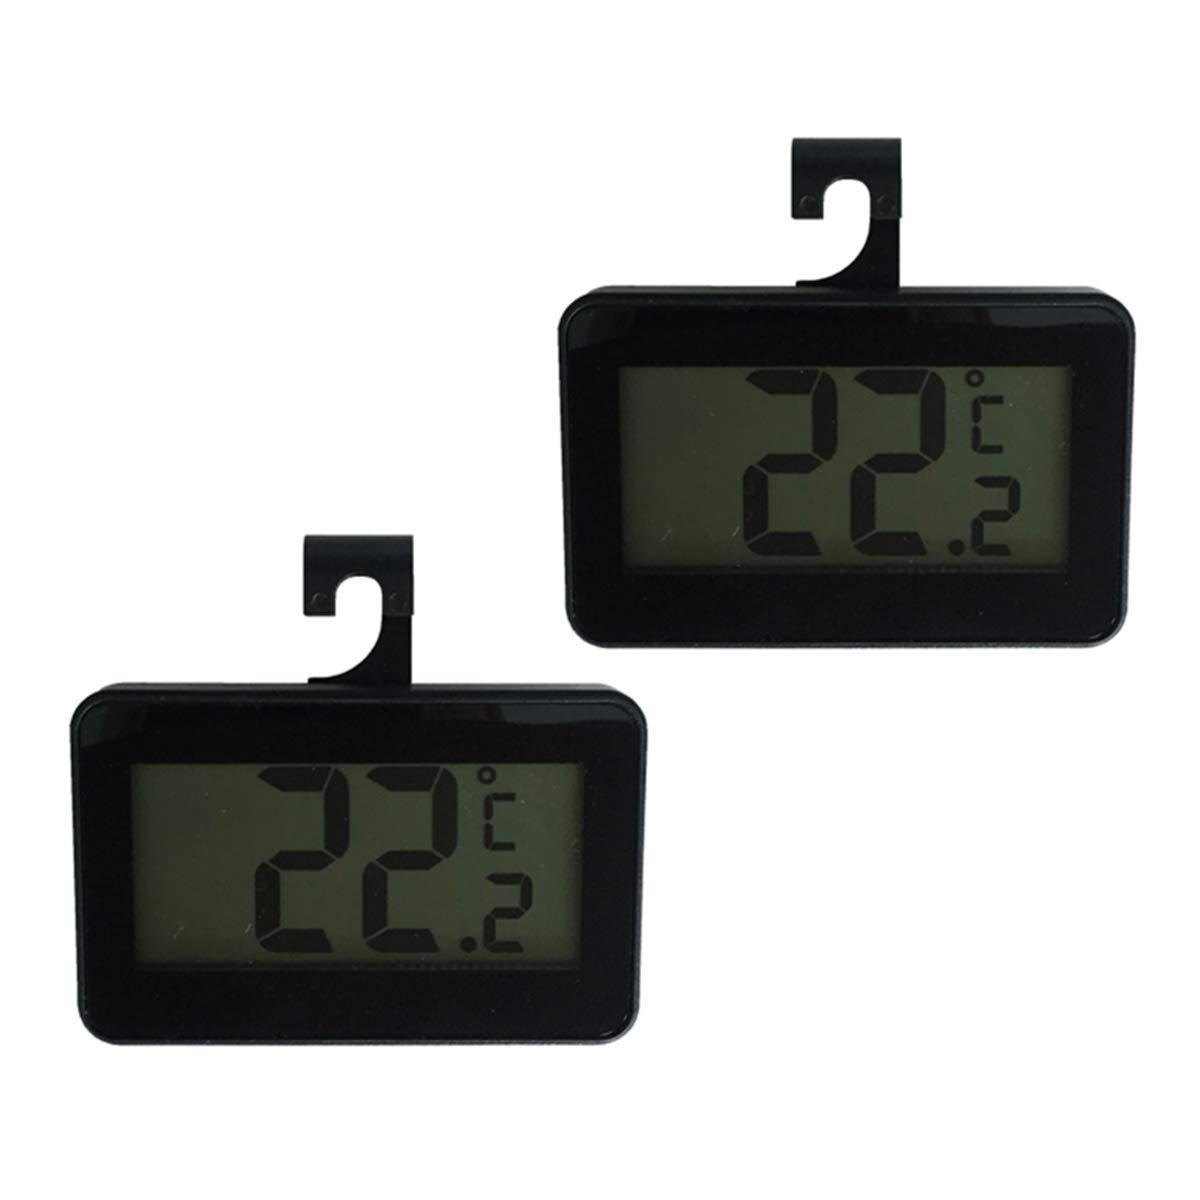 Refrigerator Thermometer 2 Pack, Wireless Small Digital Fridge Freezer Room Temperature Monitor from -20 to 60 ℃ with Large LCD Display, ℃/℉ Switch, Min/Max Record, Magnet Hook for Indoor Outdoor